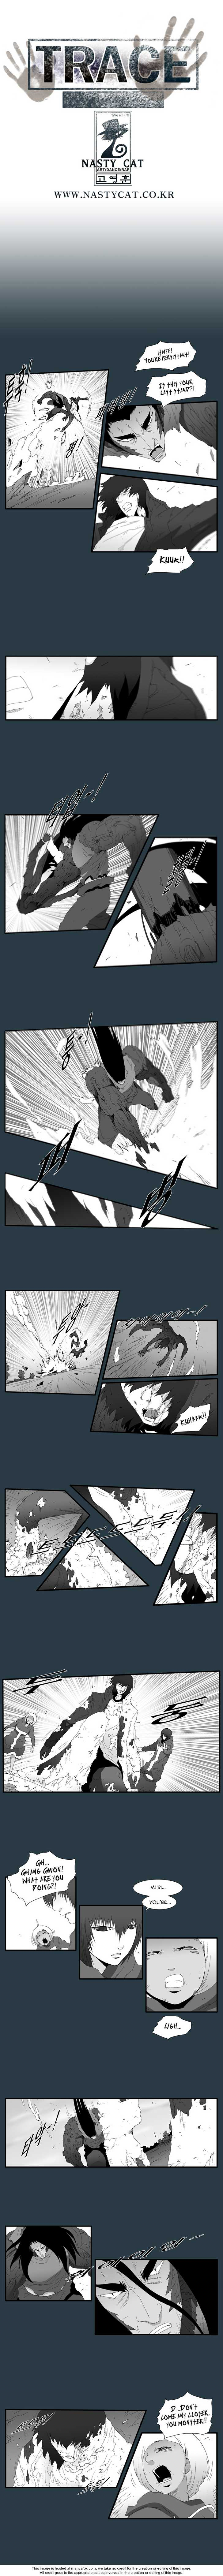 Trace 13 Page 1